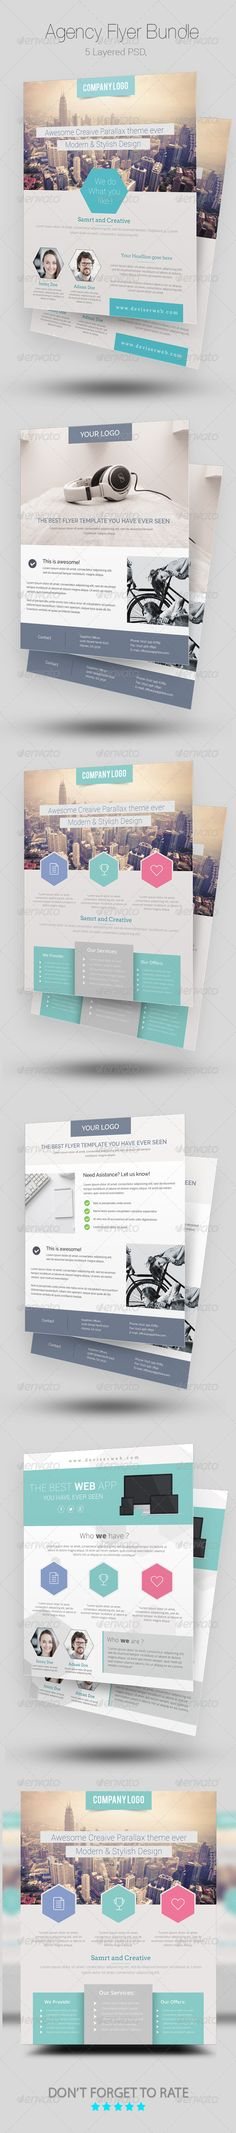 Agency/Business Flyer Bundle Template PSD | Buy and Download: http://graphicriver.net/item/agencybusiness-flyer-bundle/8685595?WT.ac=category_thumb&WT.z_author=rtralrayhan&ref=ksioks